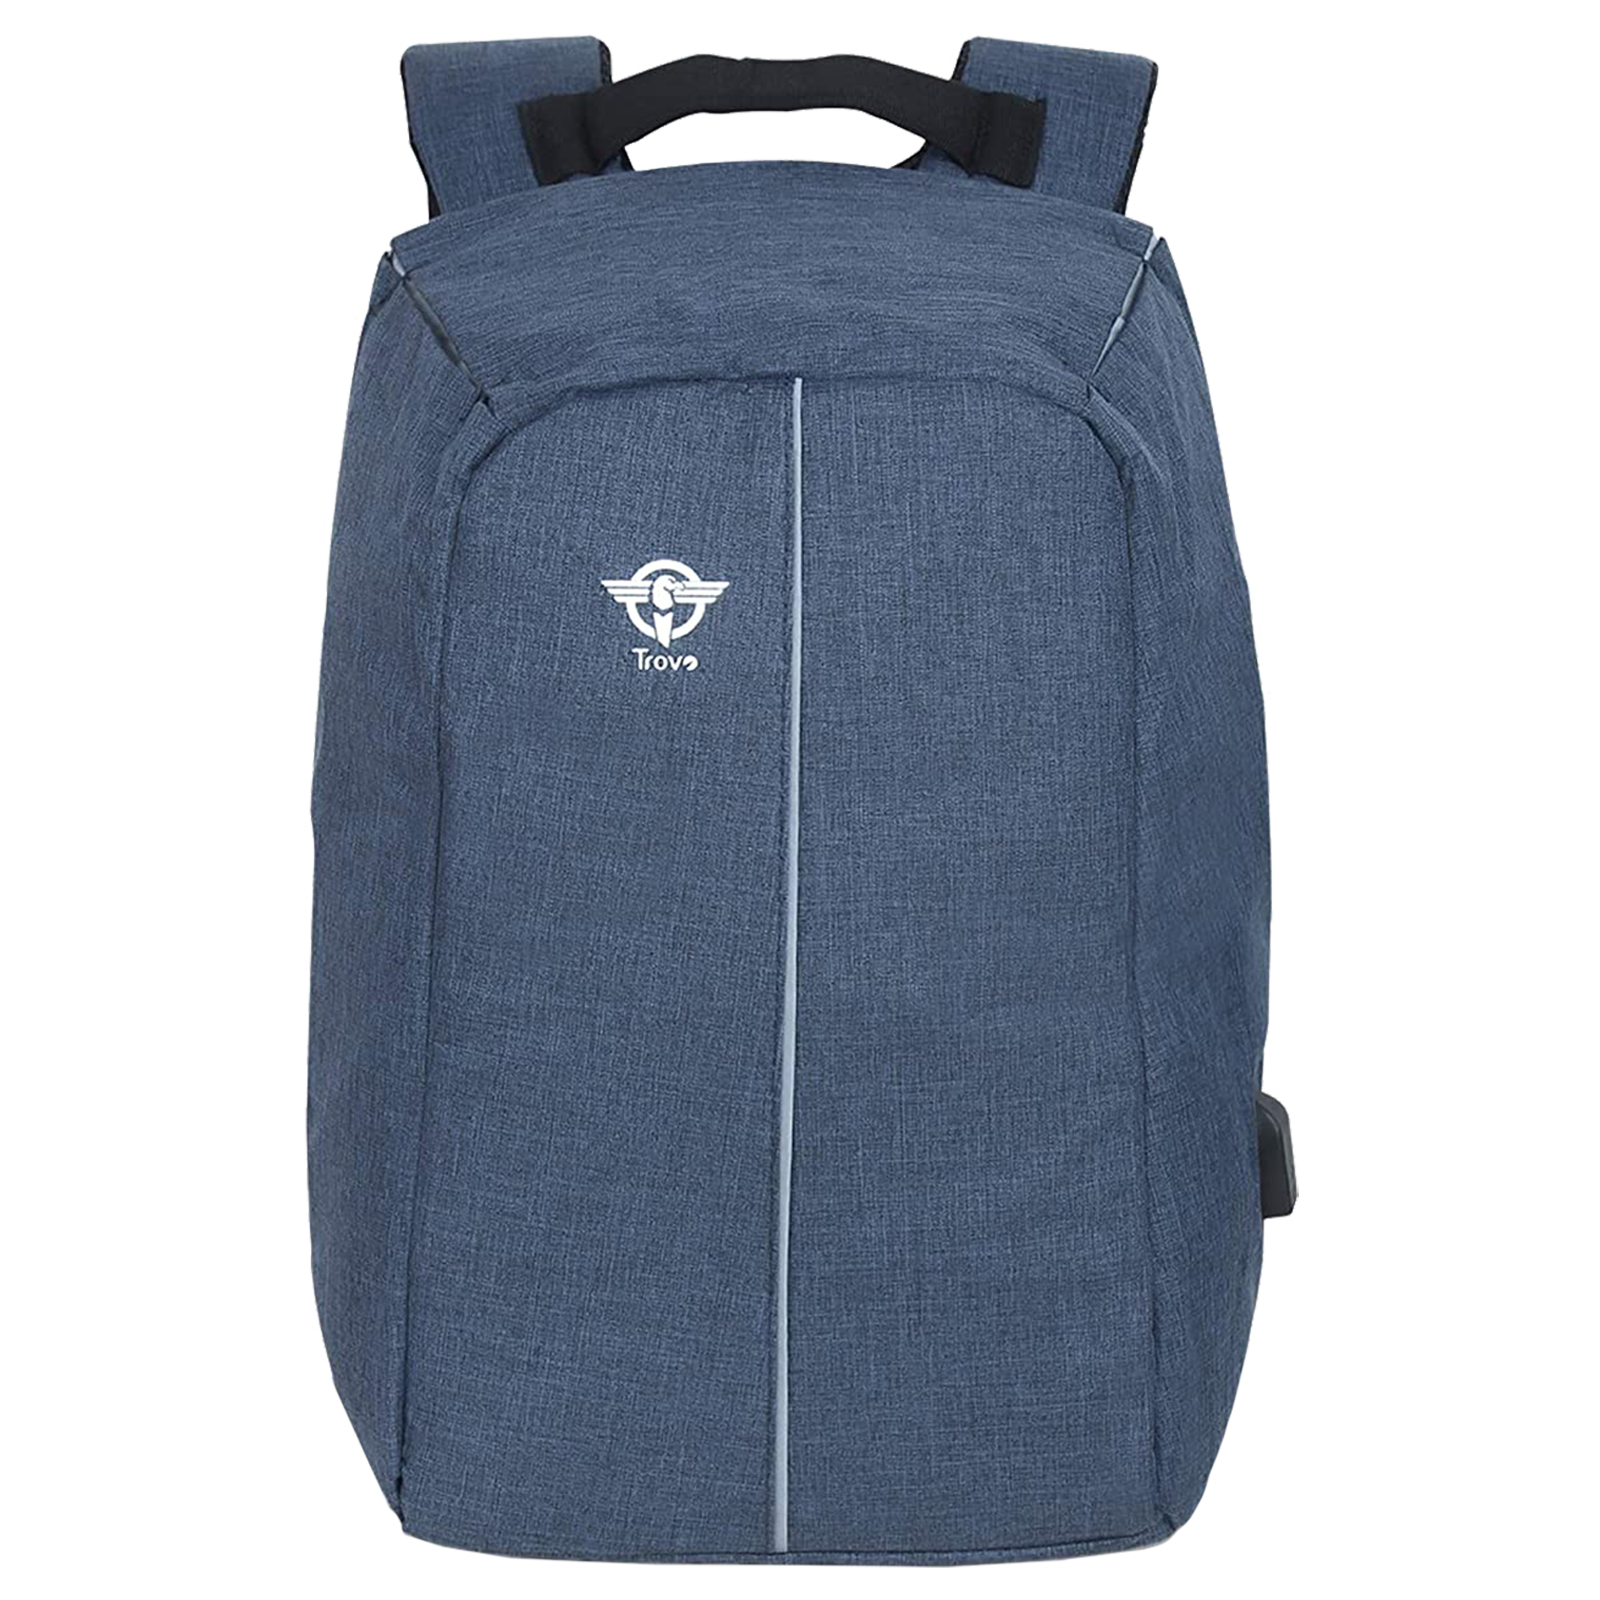 Trovo Champ Pro Polyester Backpack for Laptop (USB Port, TLB-81-BLUE, Blue)_1